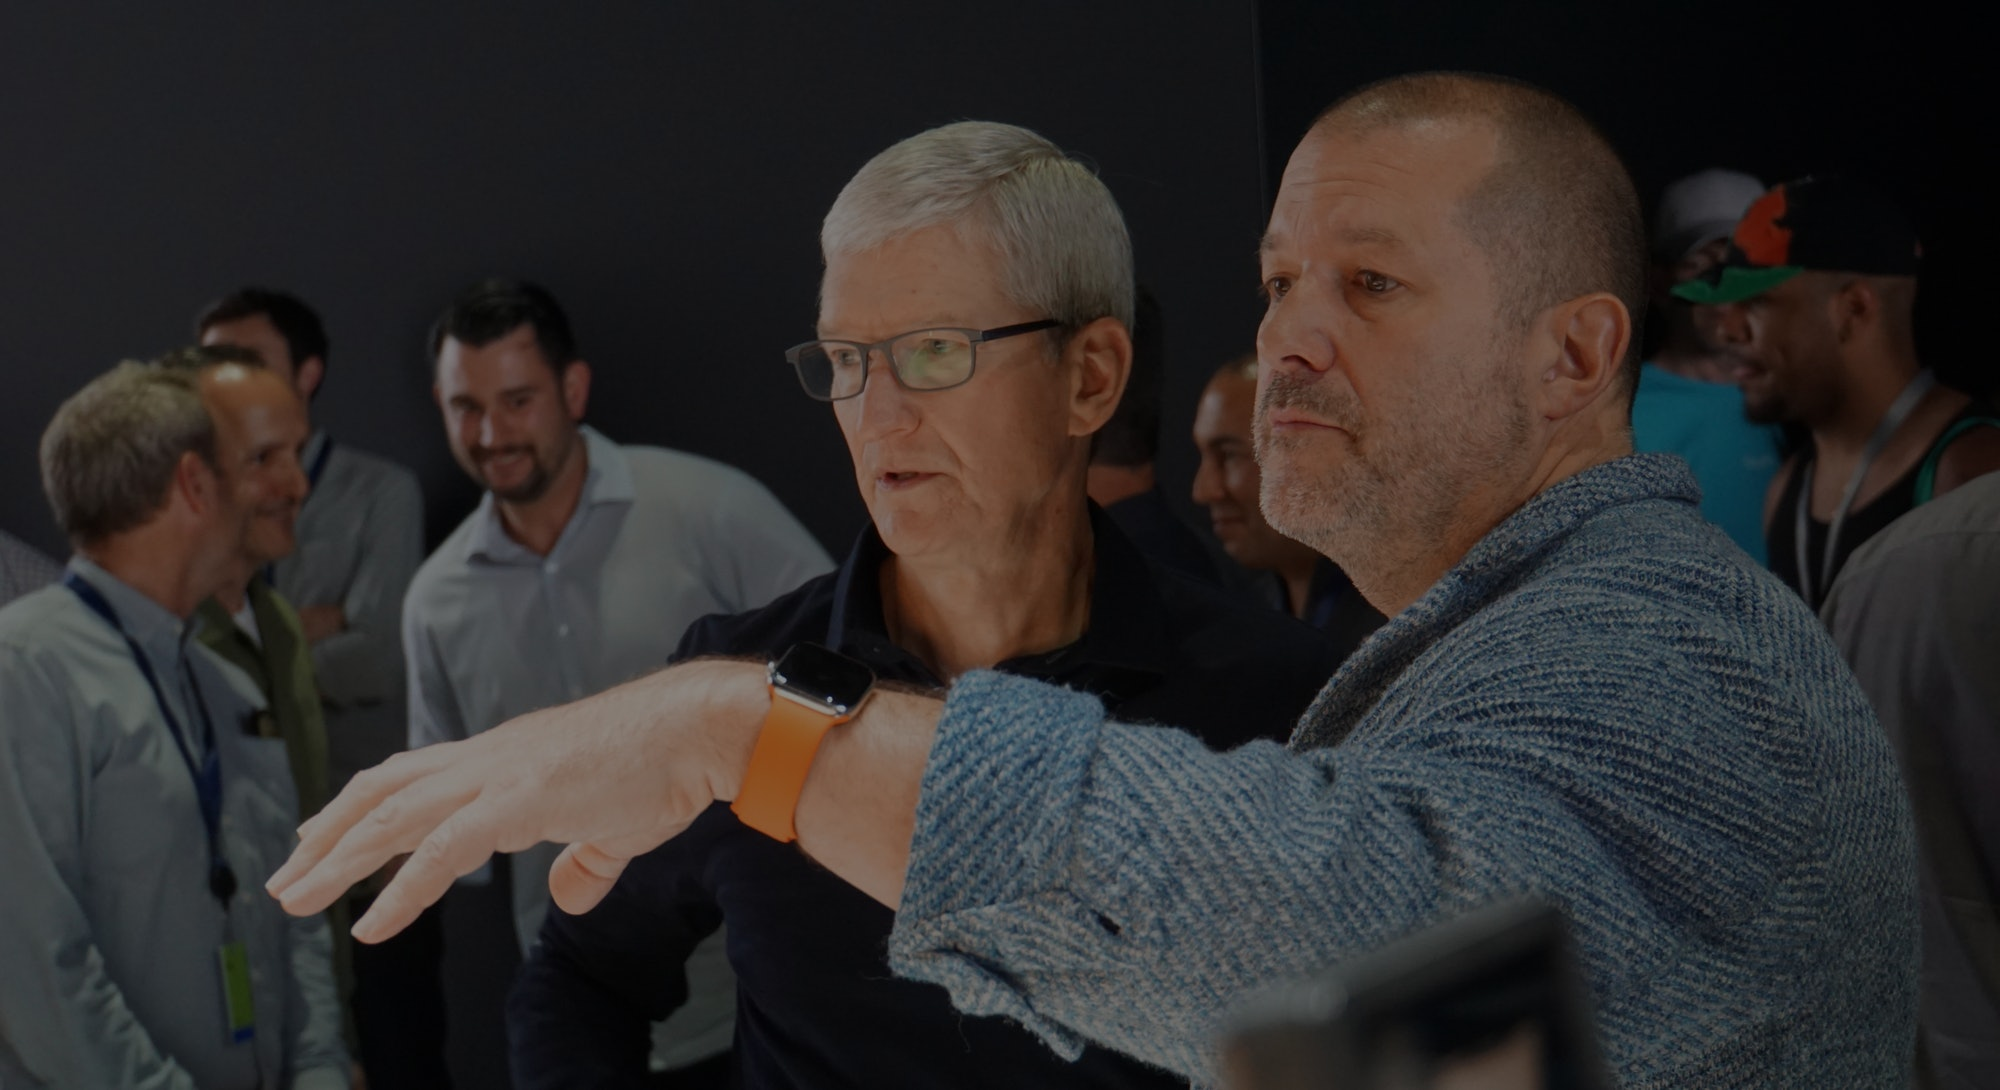 Apple CEO Tim Cook and Jony Ive confused at products.